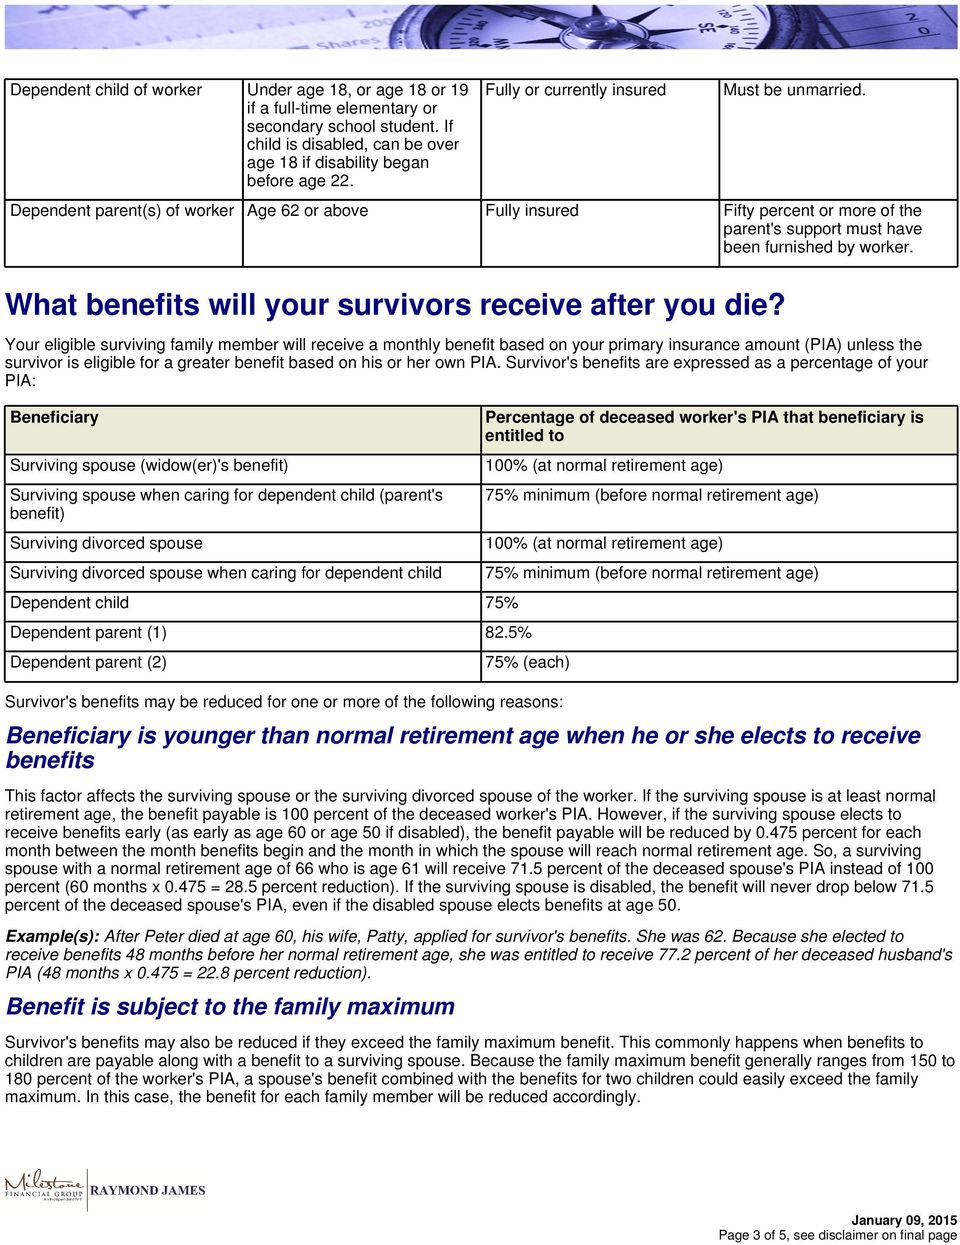 What benefits will your survivors receive after you die?